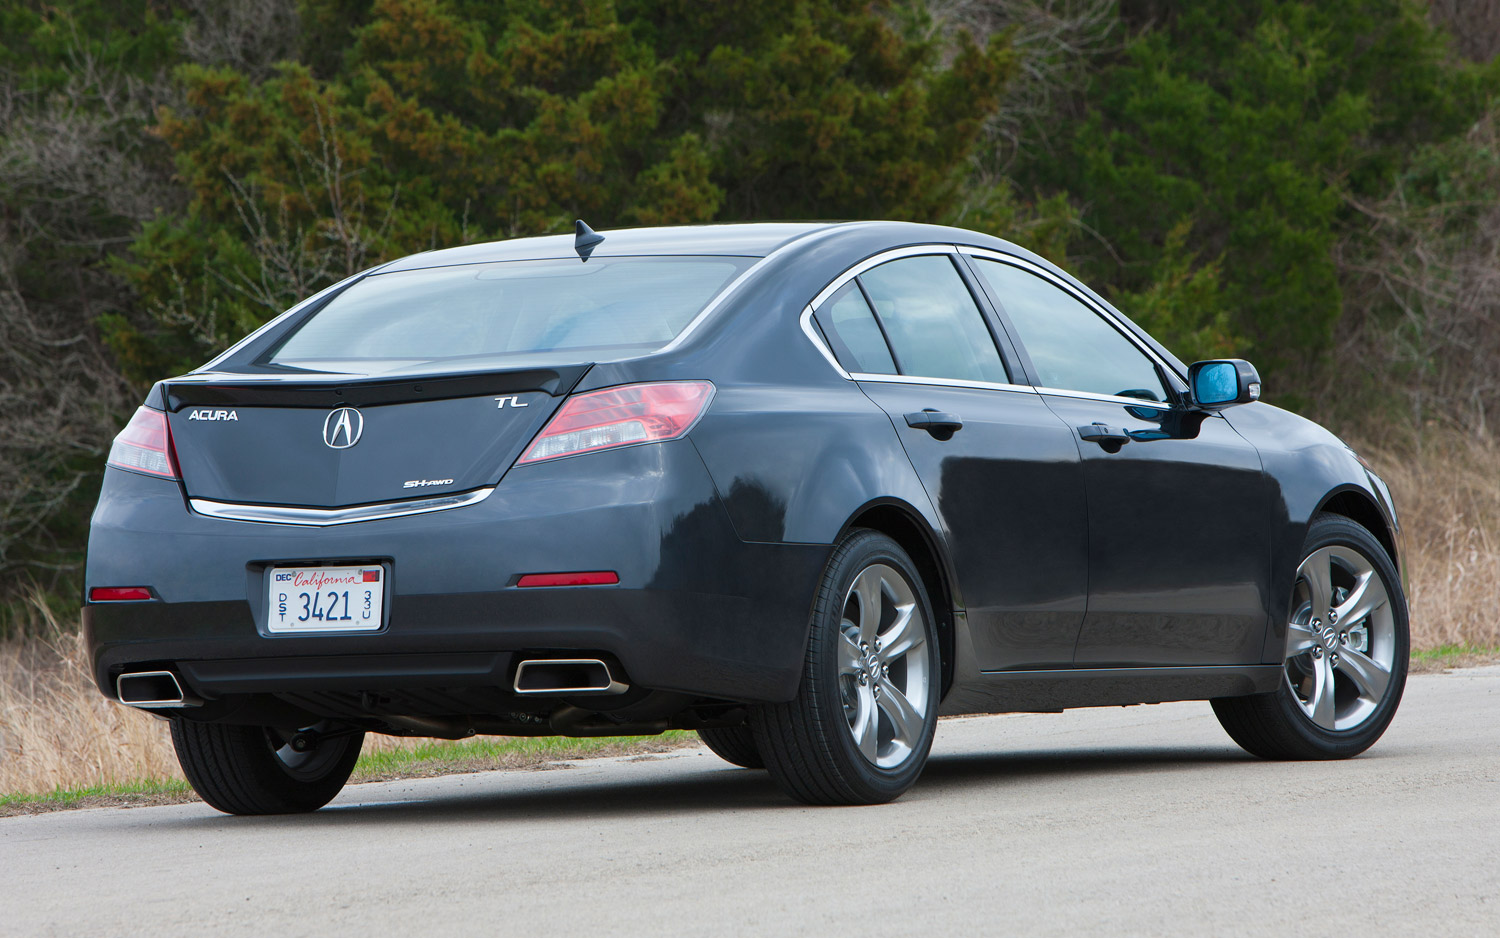 acura tl pictures #12